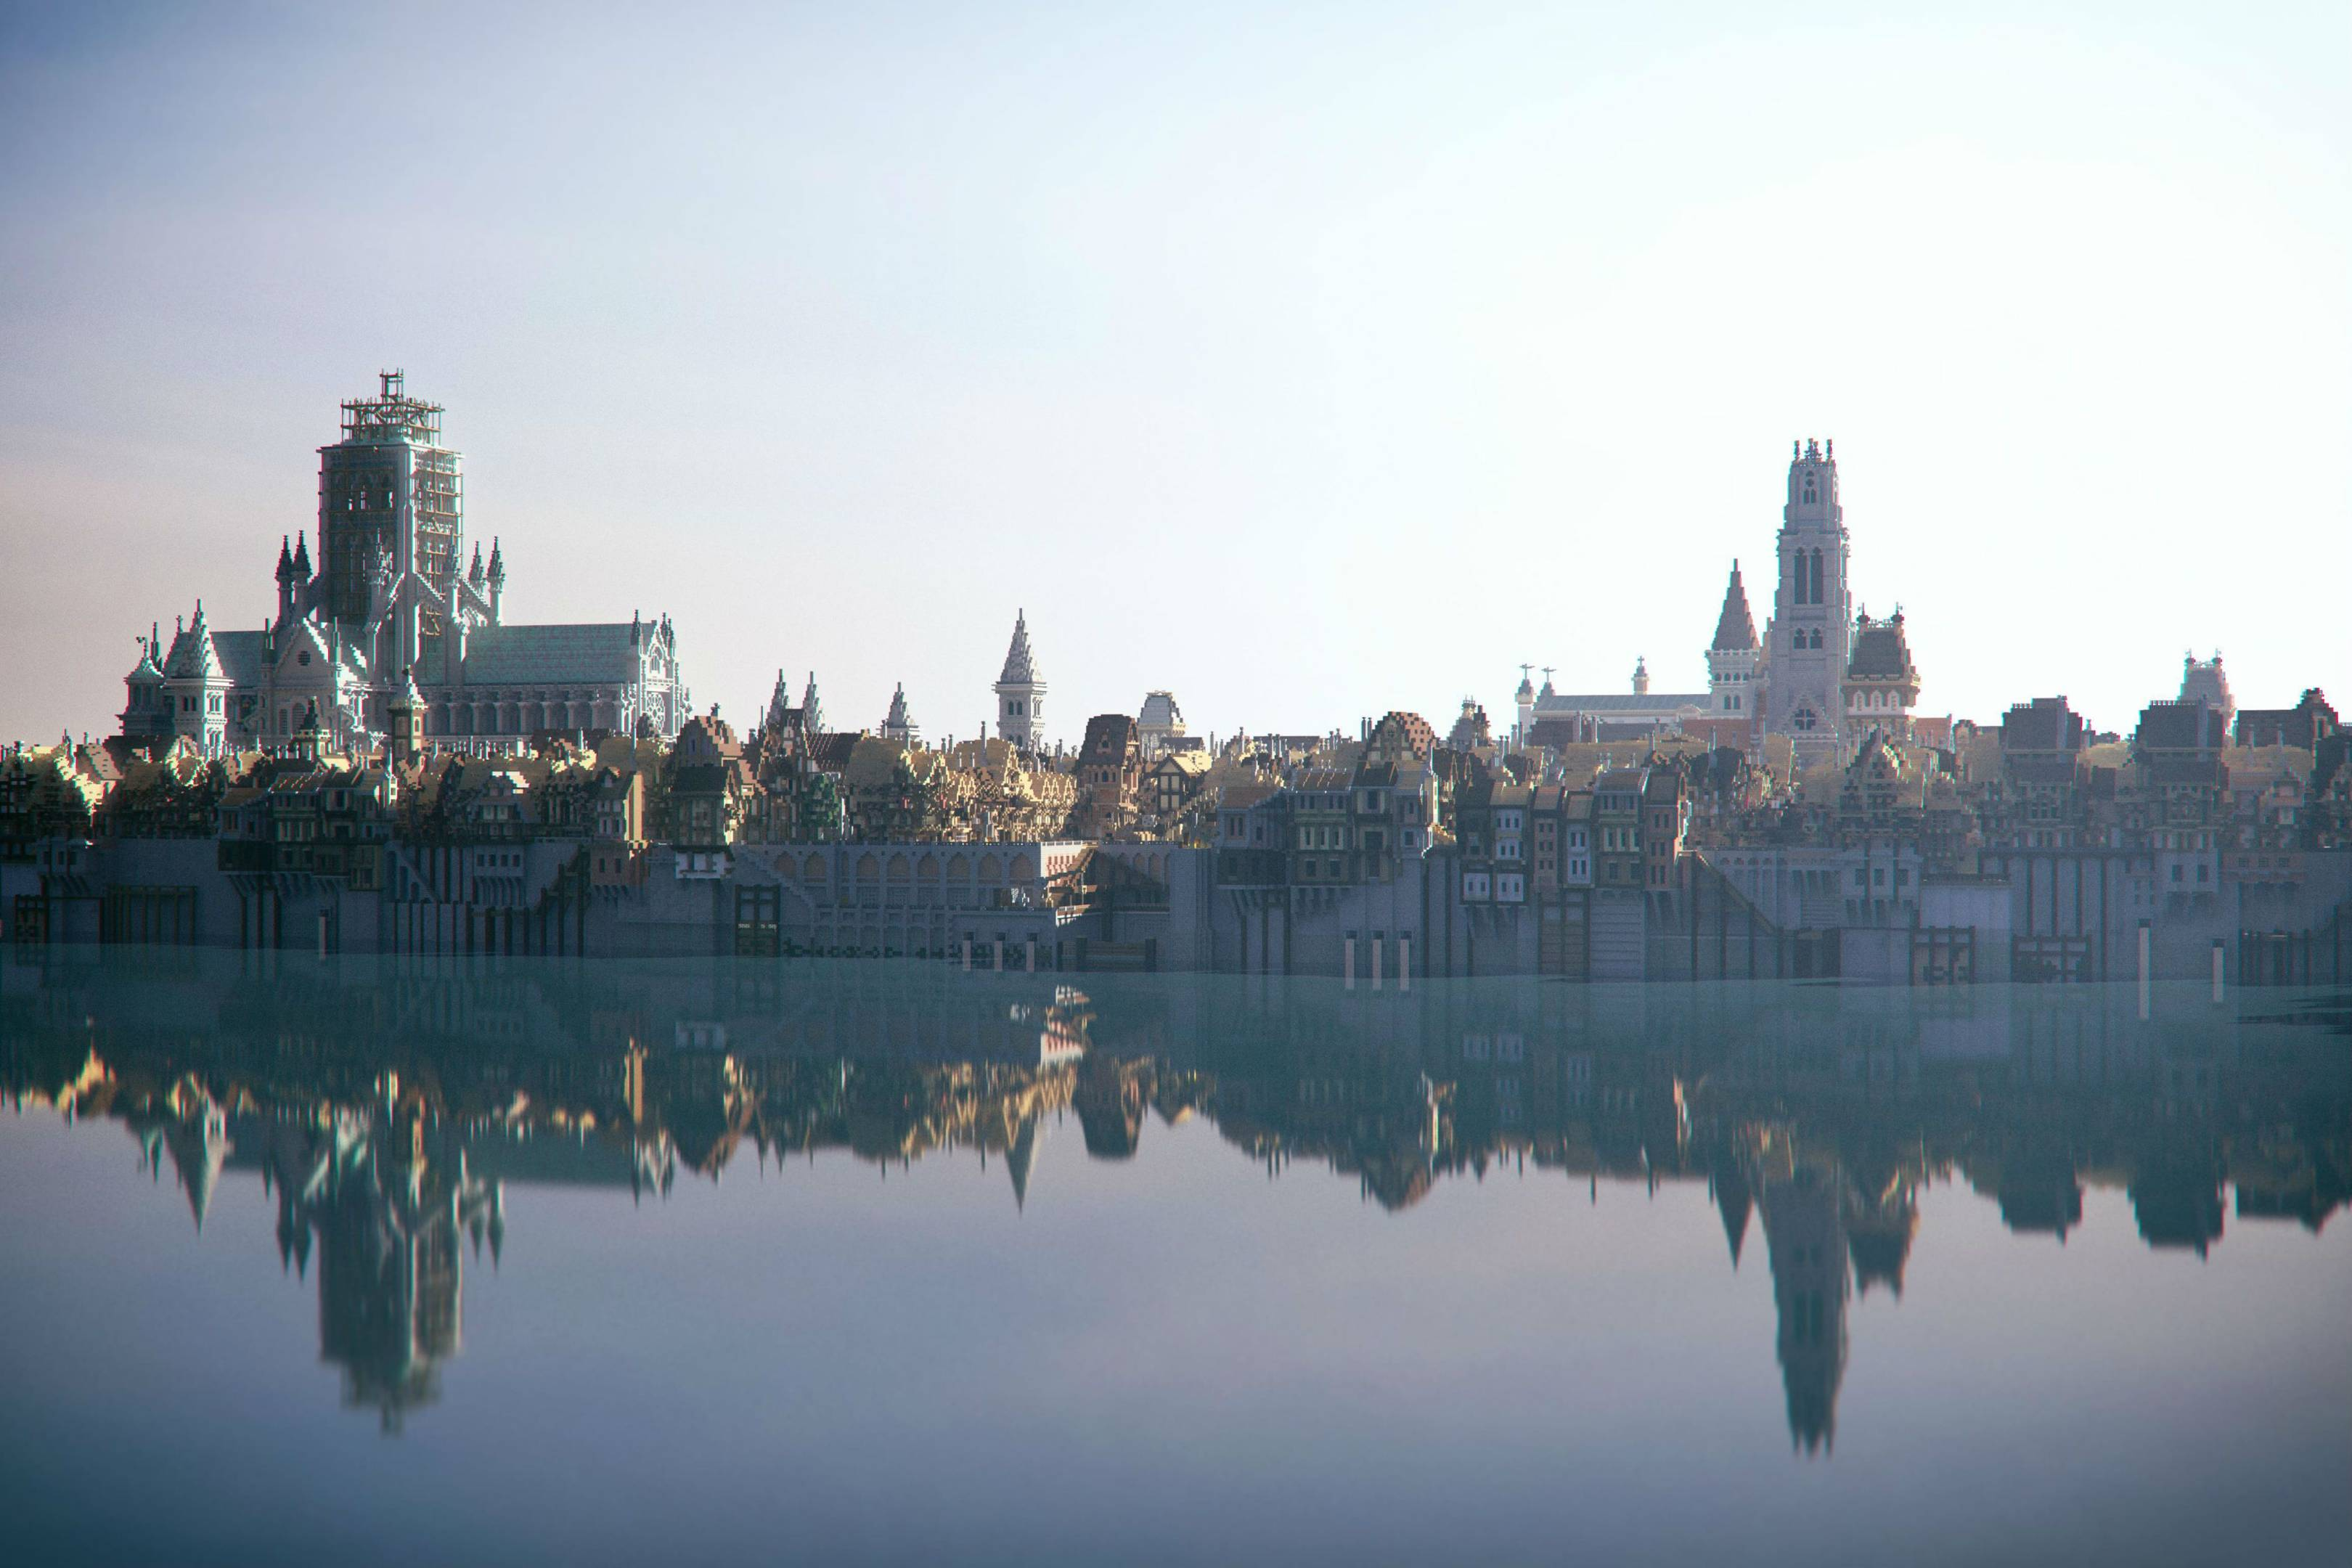 Minecraft Egypt Map.Minecraft Is Used By The Museum Of London To Recreate The Great Fire